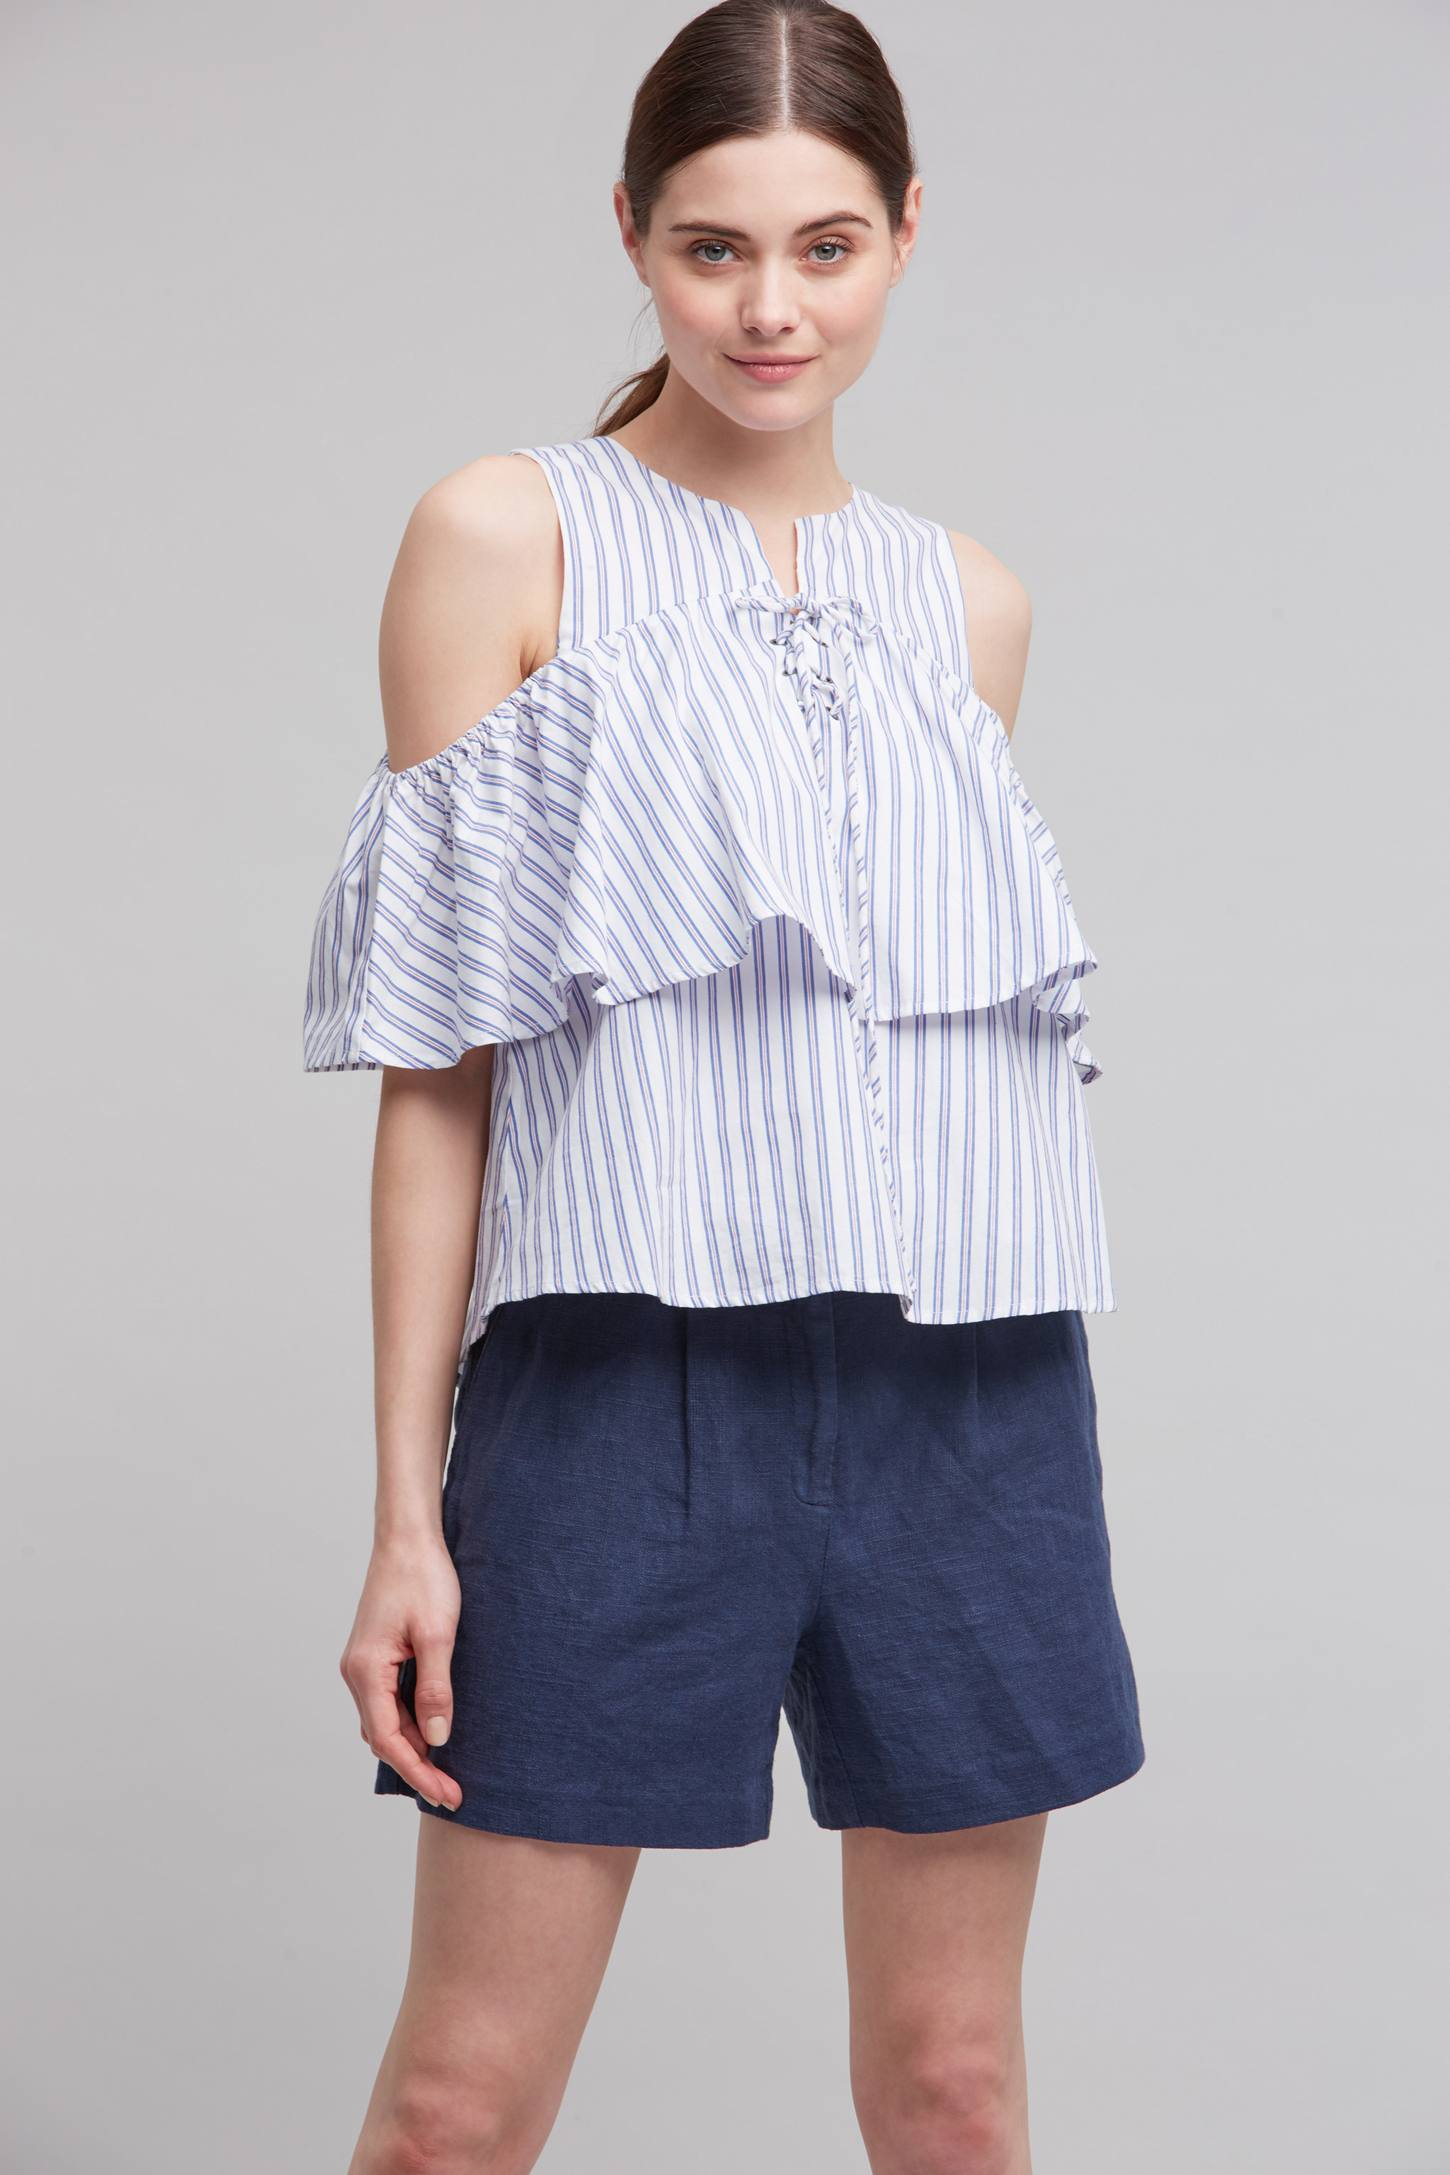 Slide View: 1: Kelby Open-Shoulder Top, Blue